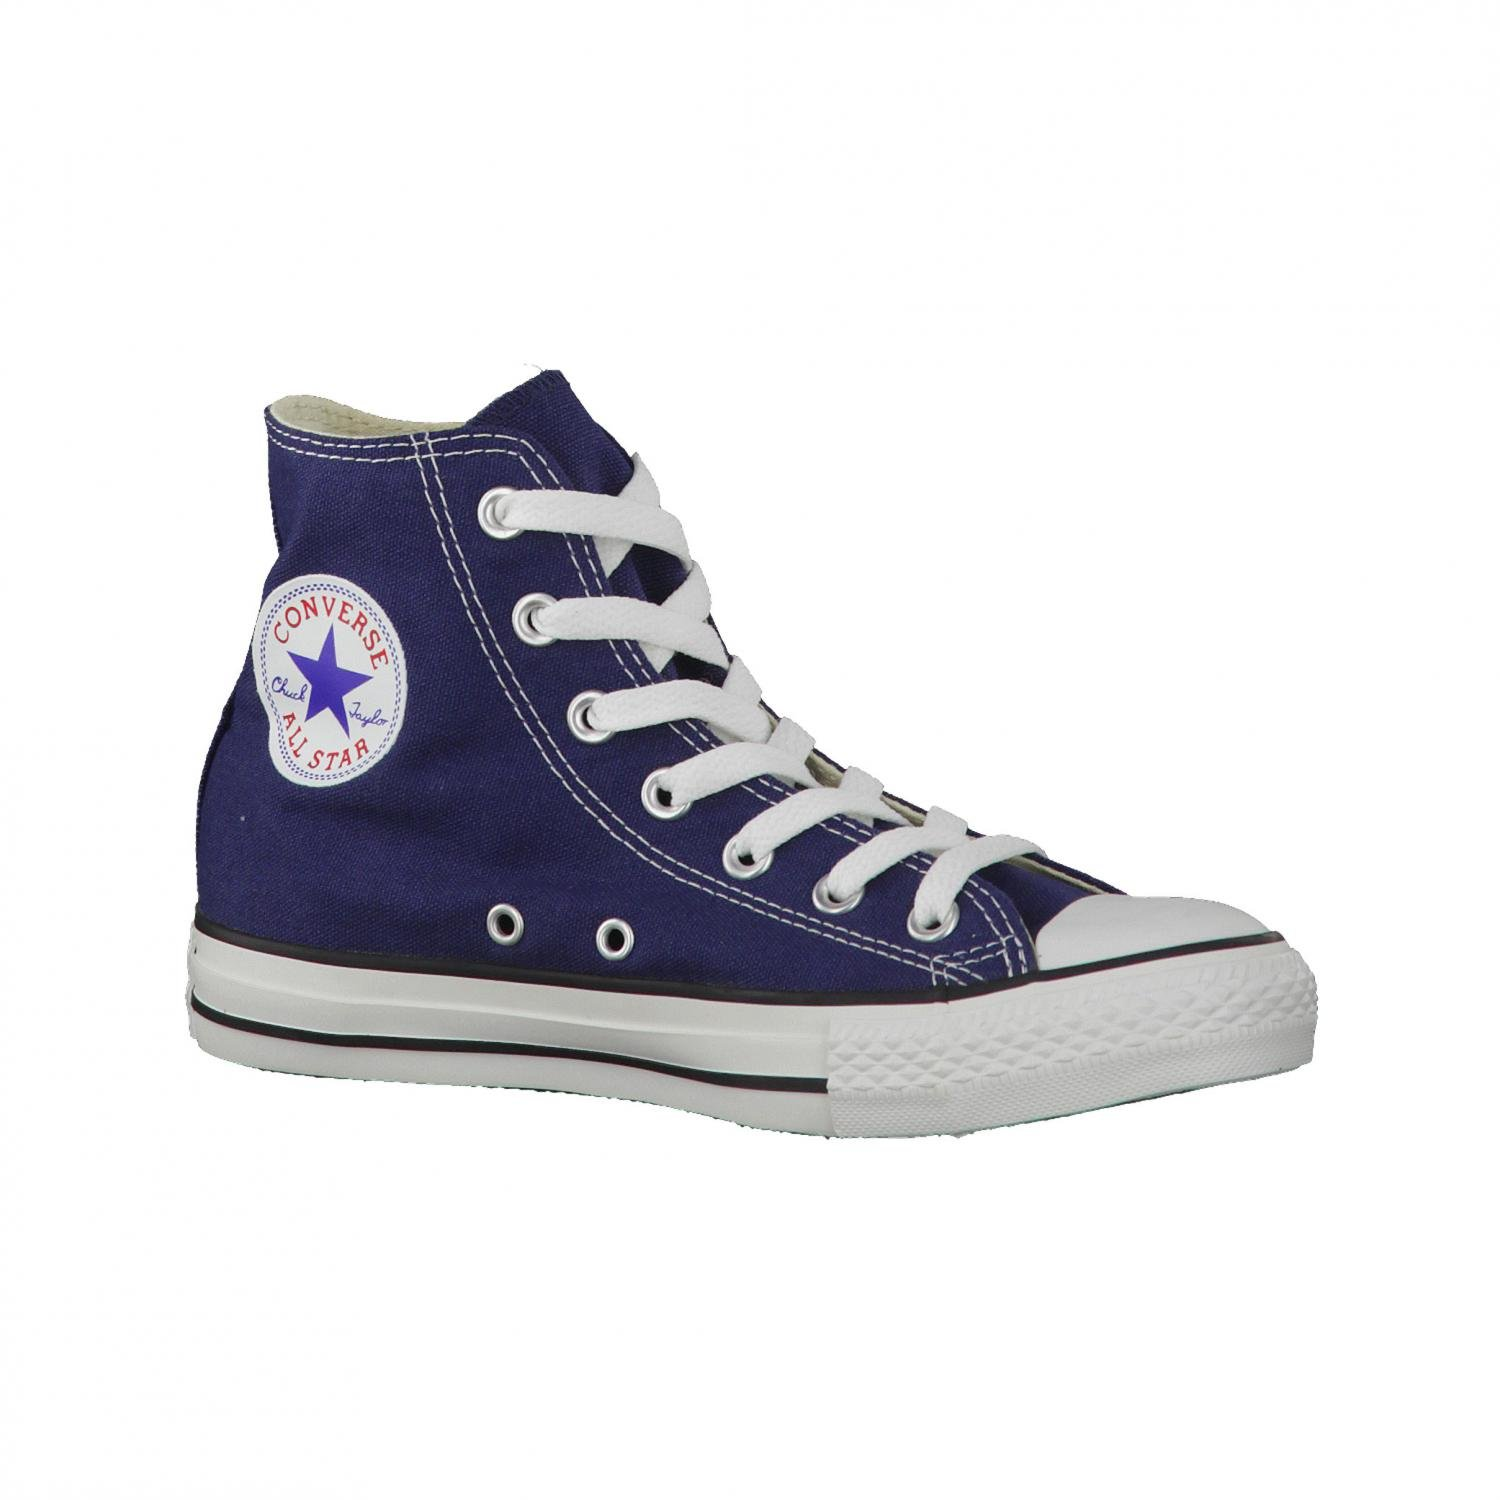 Converse Shoes All Star Hi Top Navy Blue Men Size 10.5 Sneakers M9622 by Converse